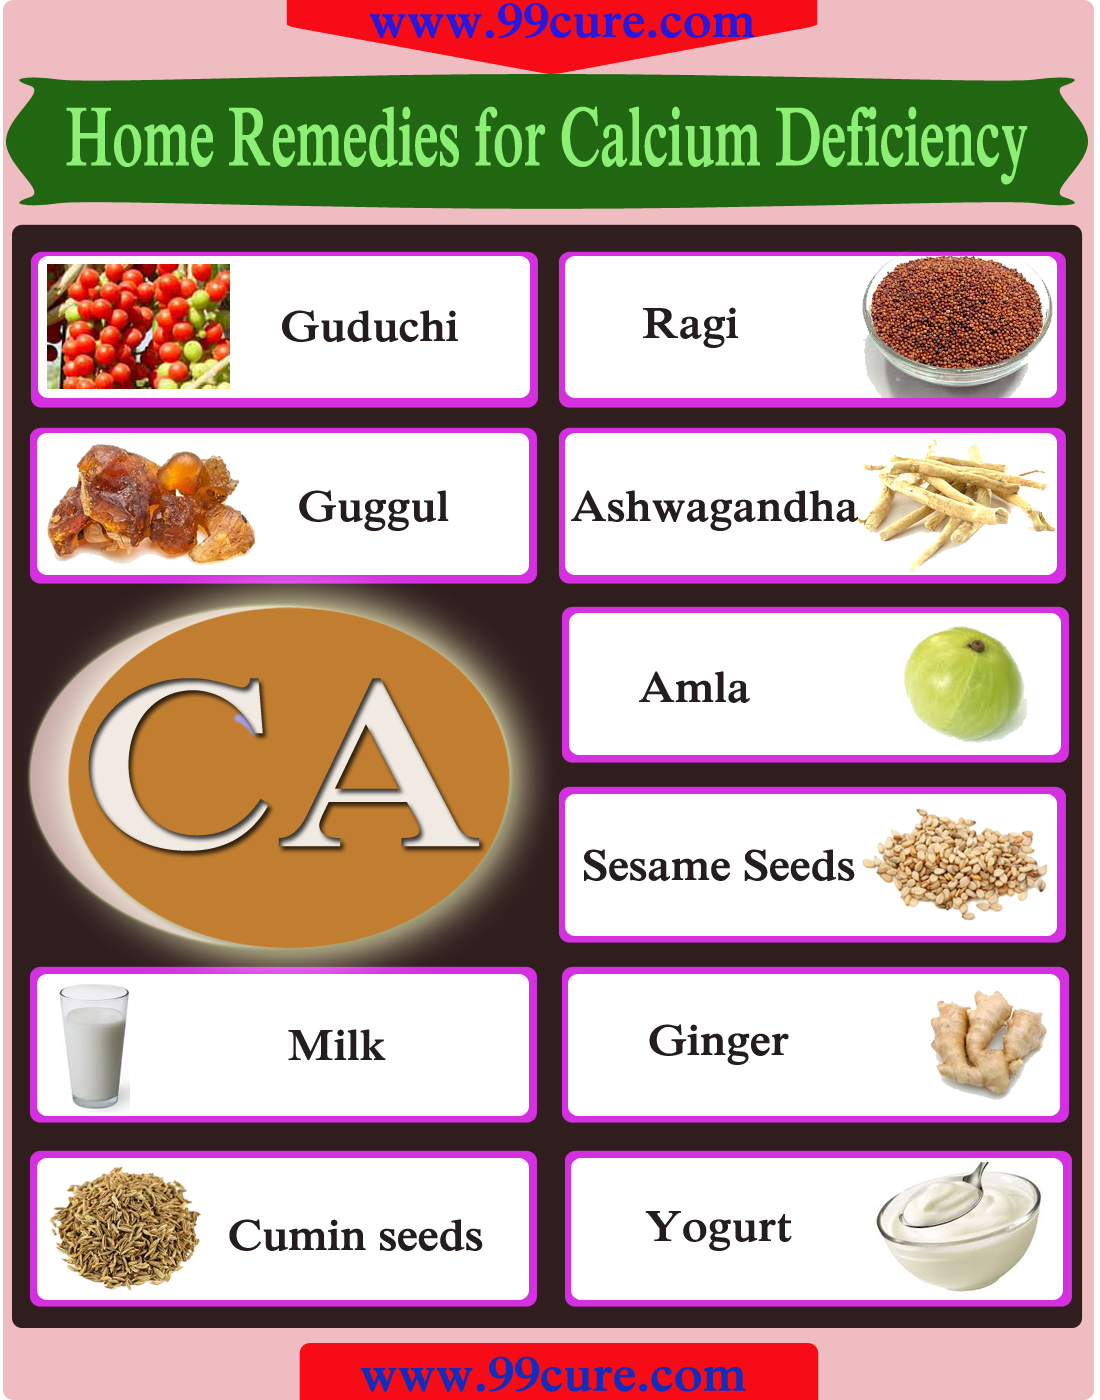 Home Remedies for Calcium Deficiency